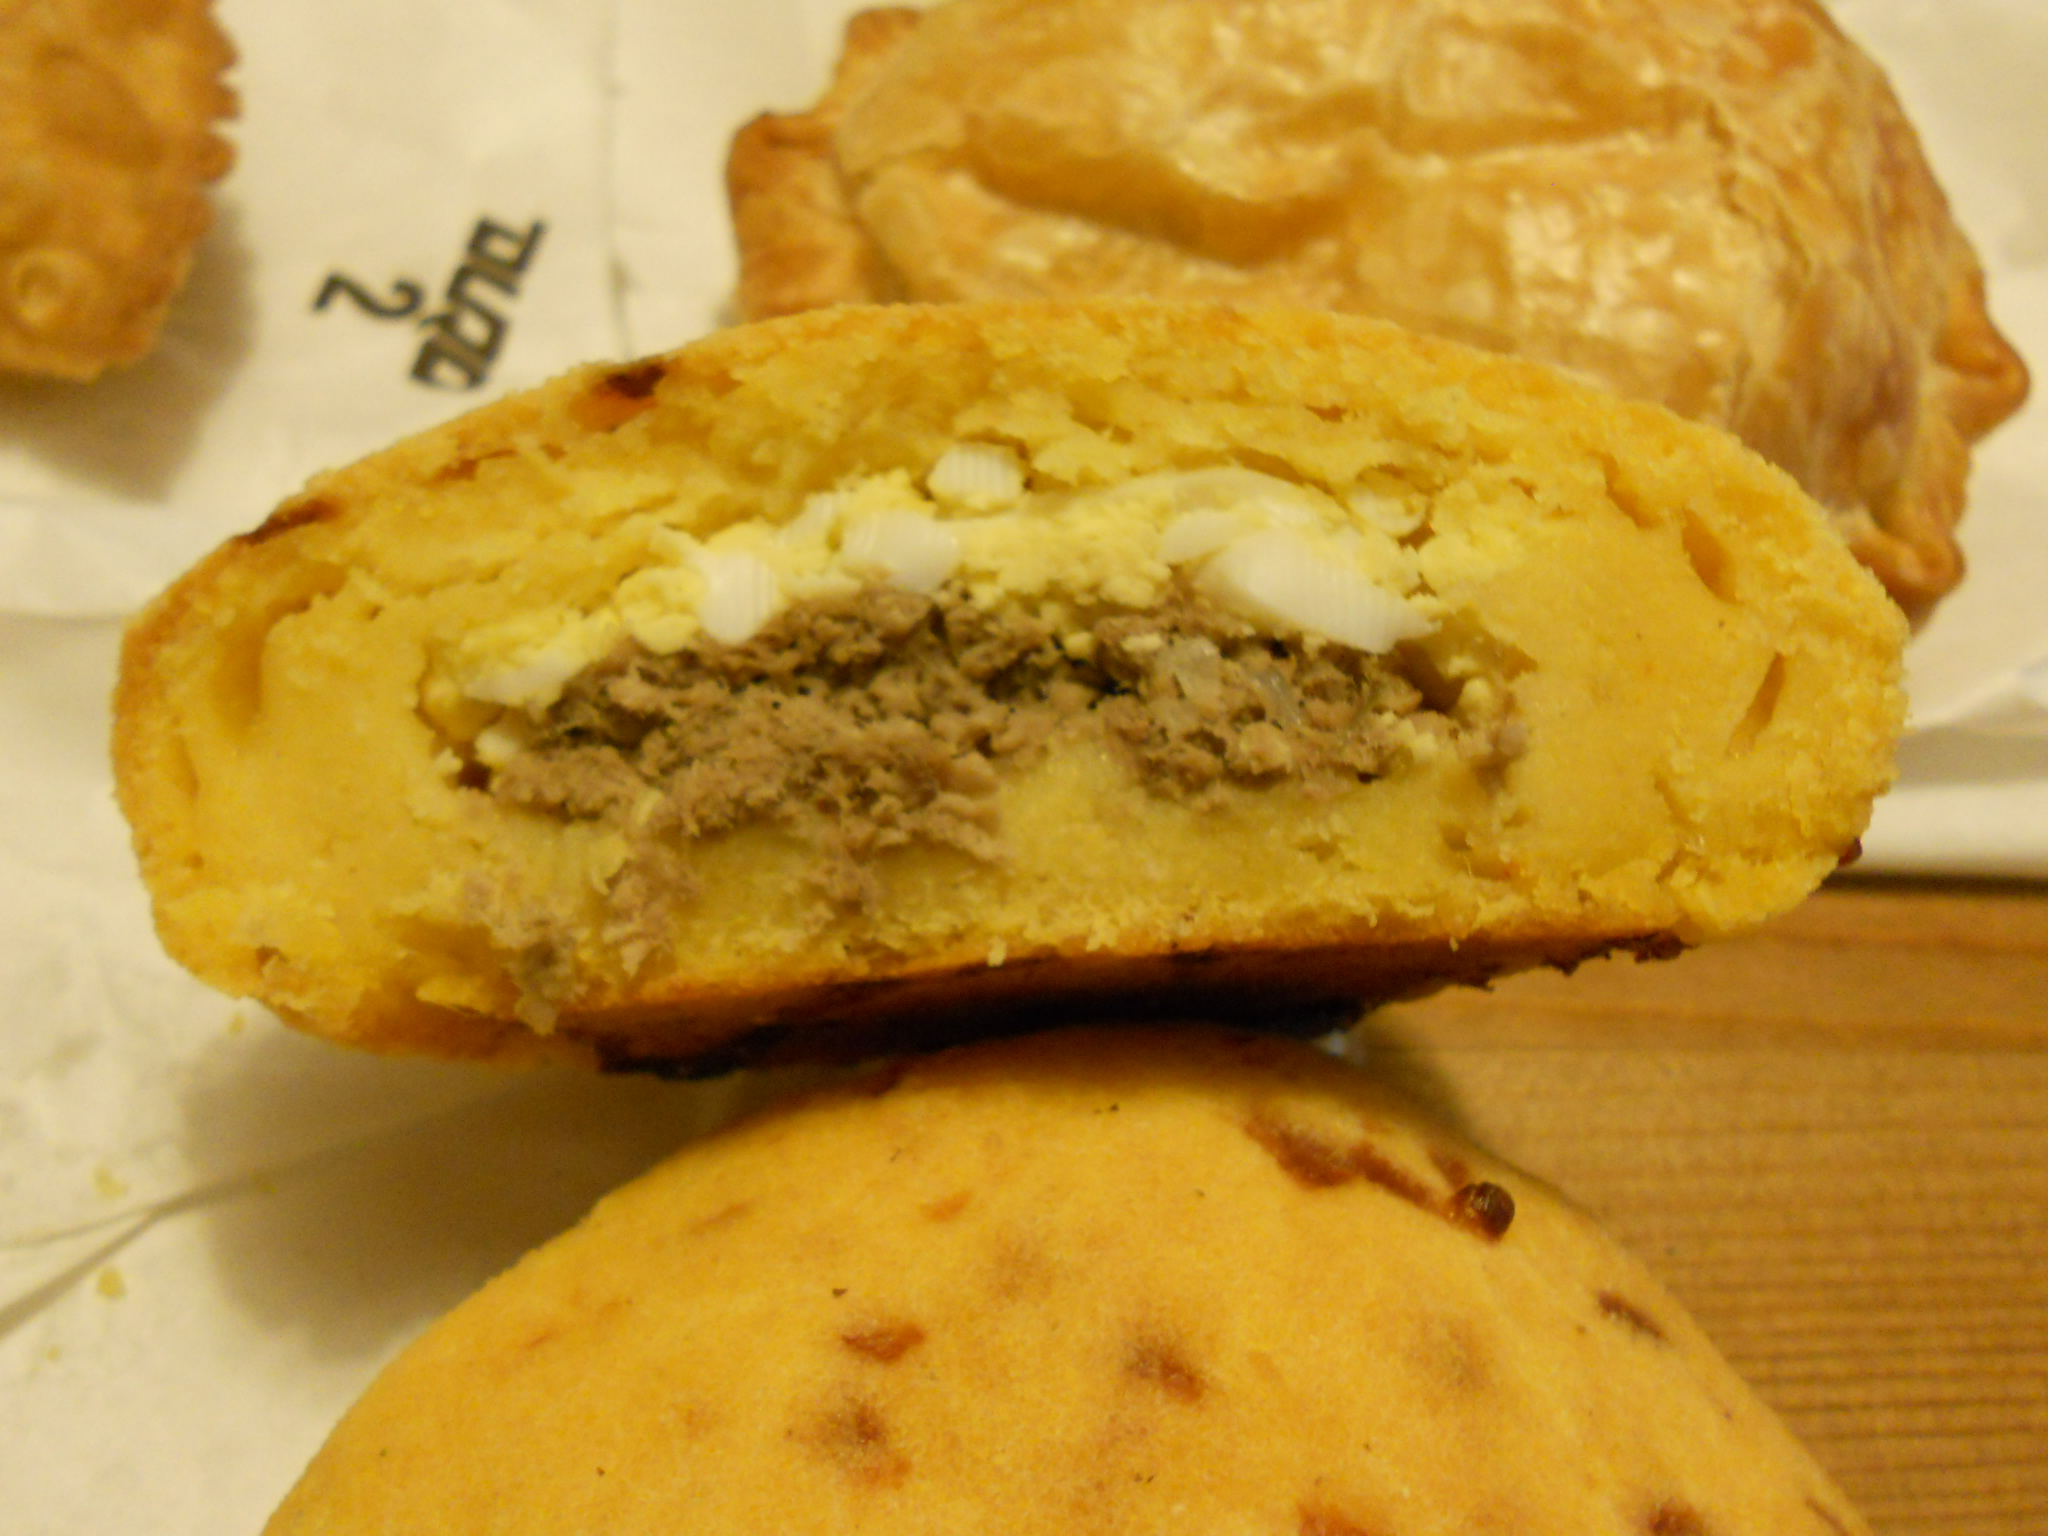 paraguayan food at i love py bakery nyc united nations